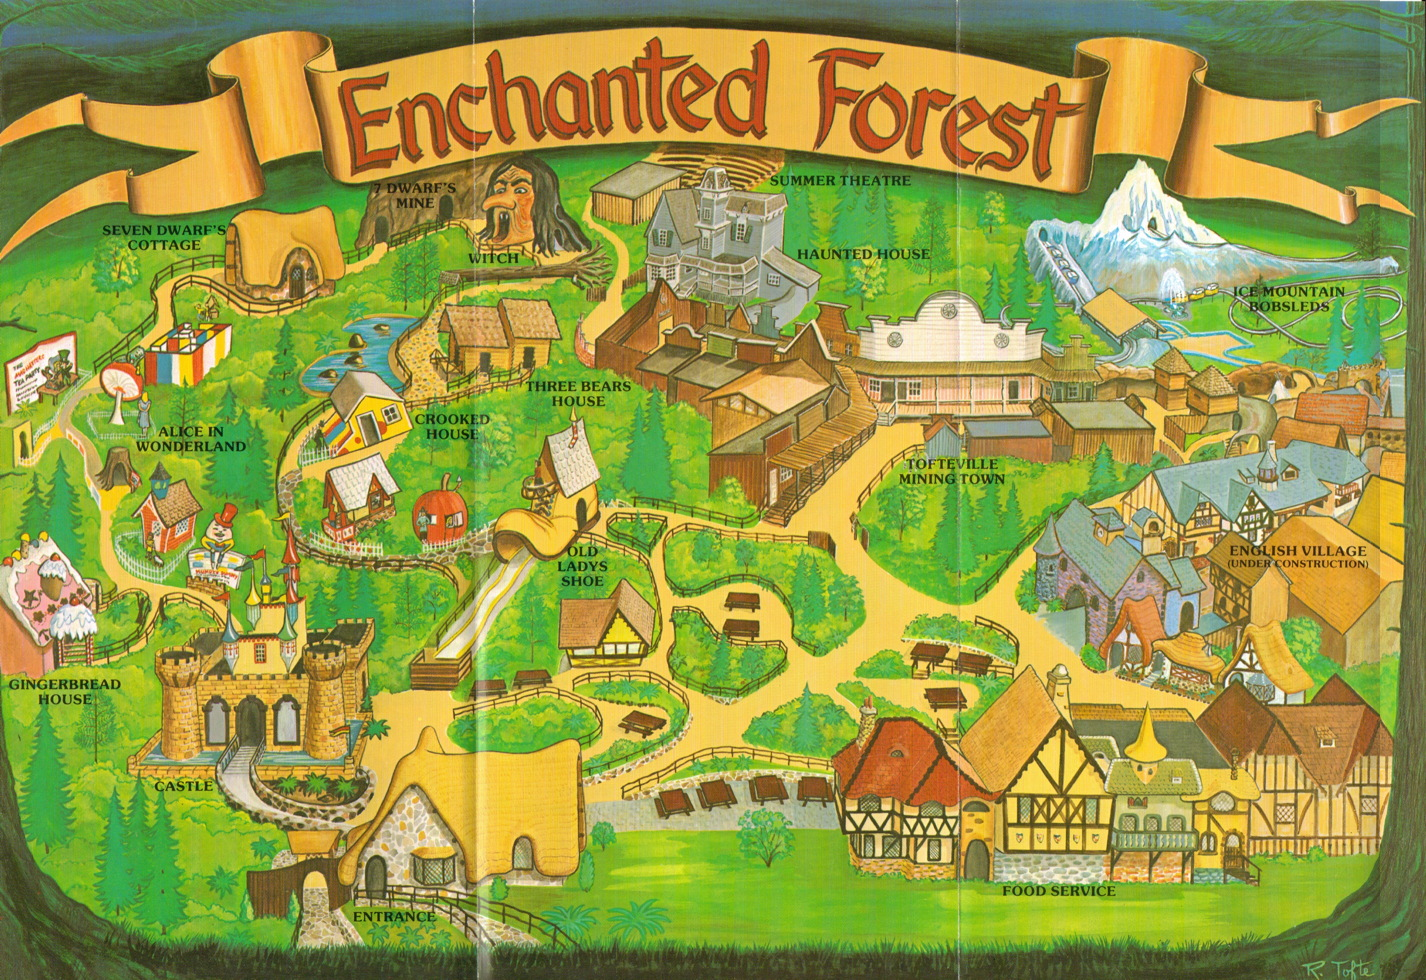 NewsPlusNotes From The Vault Enchanted Forest Brochure 1995